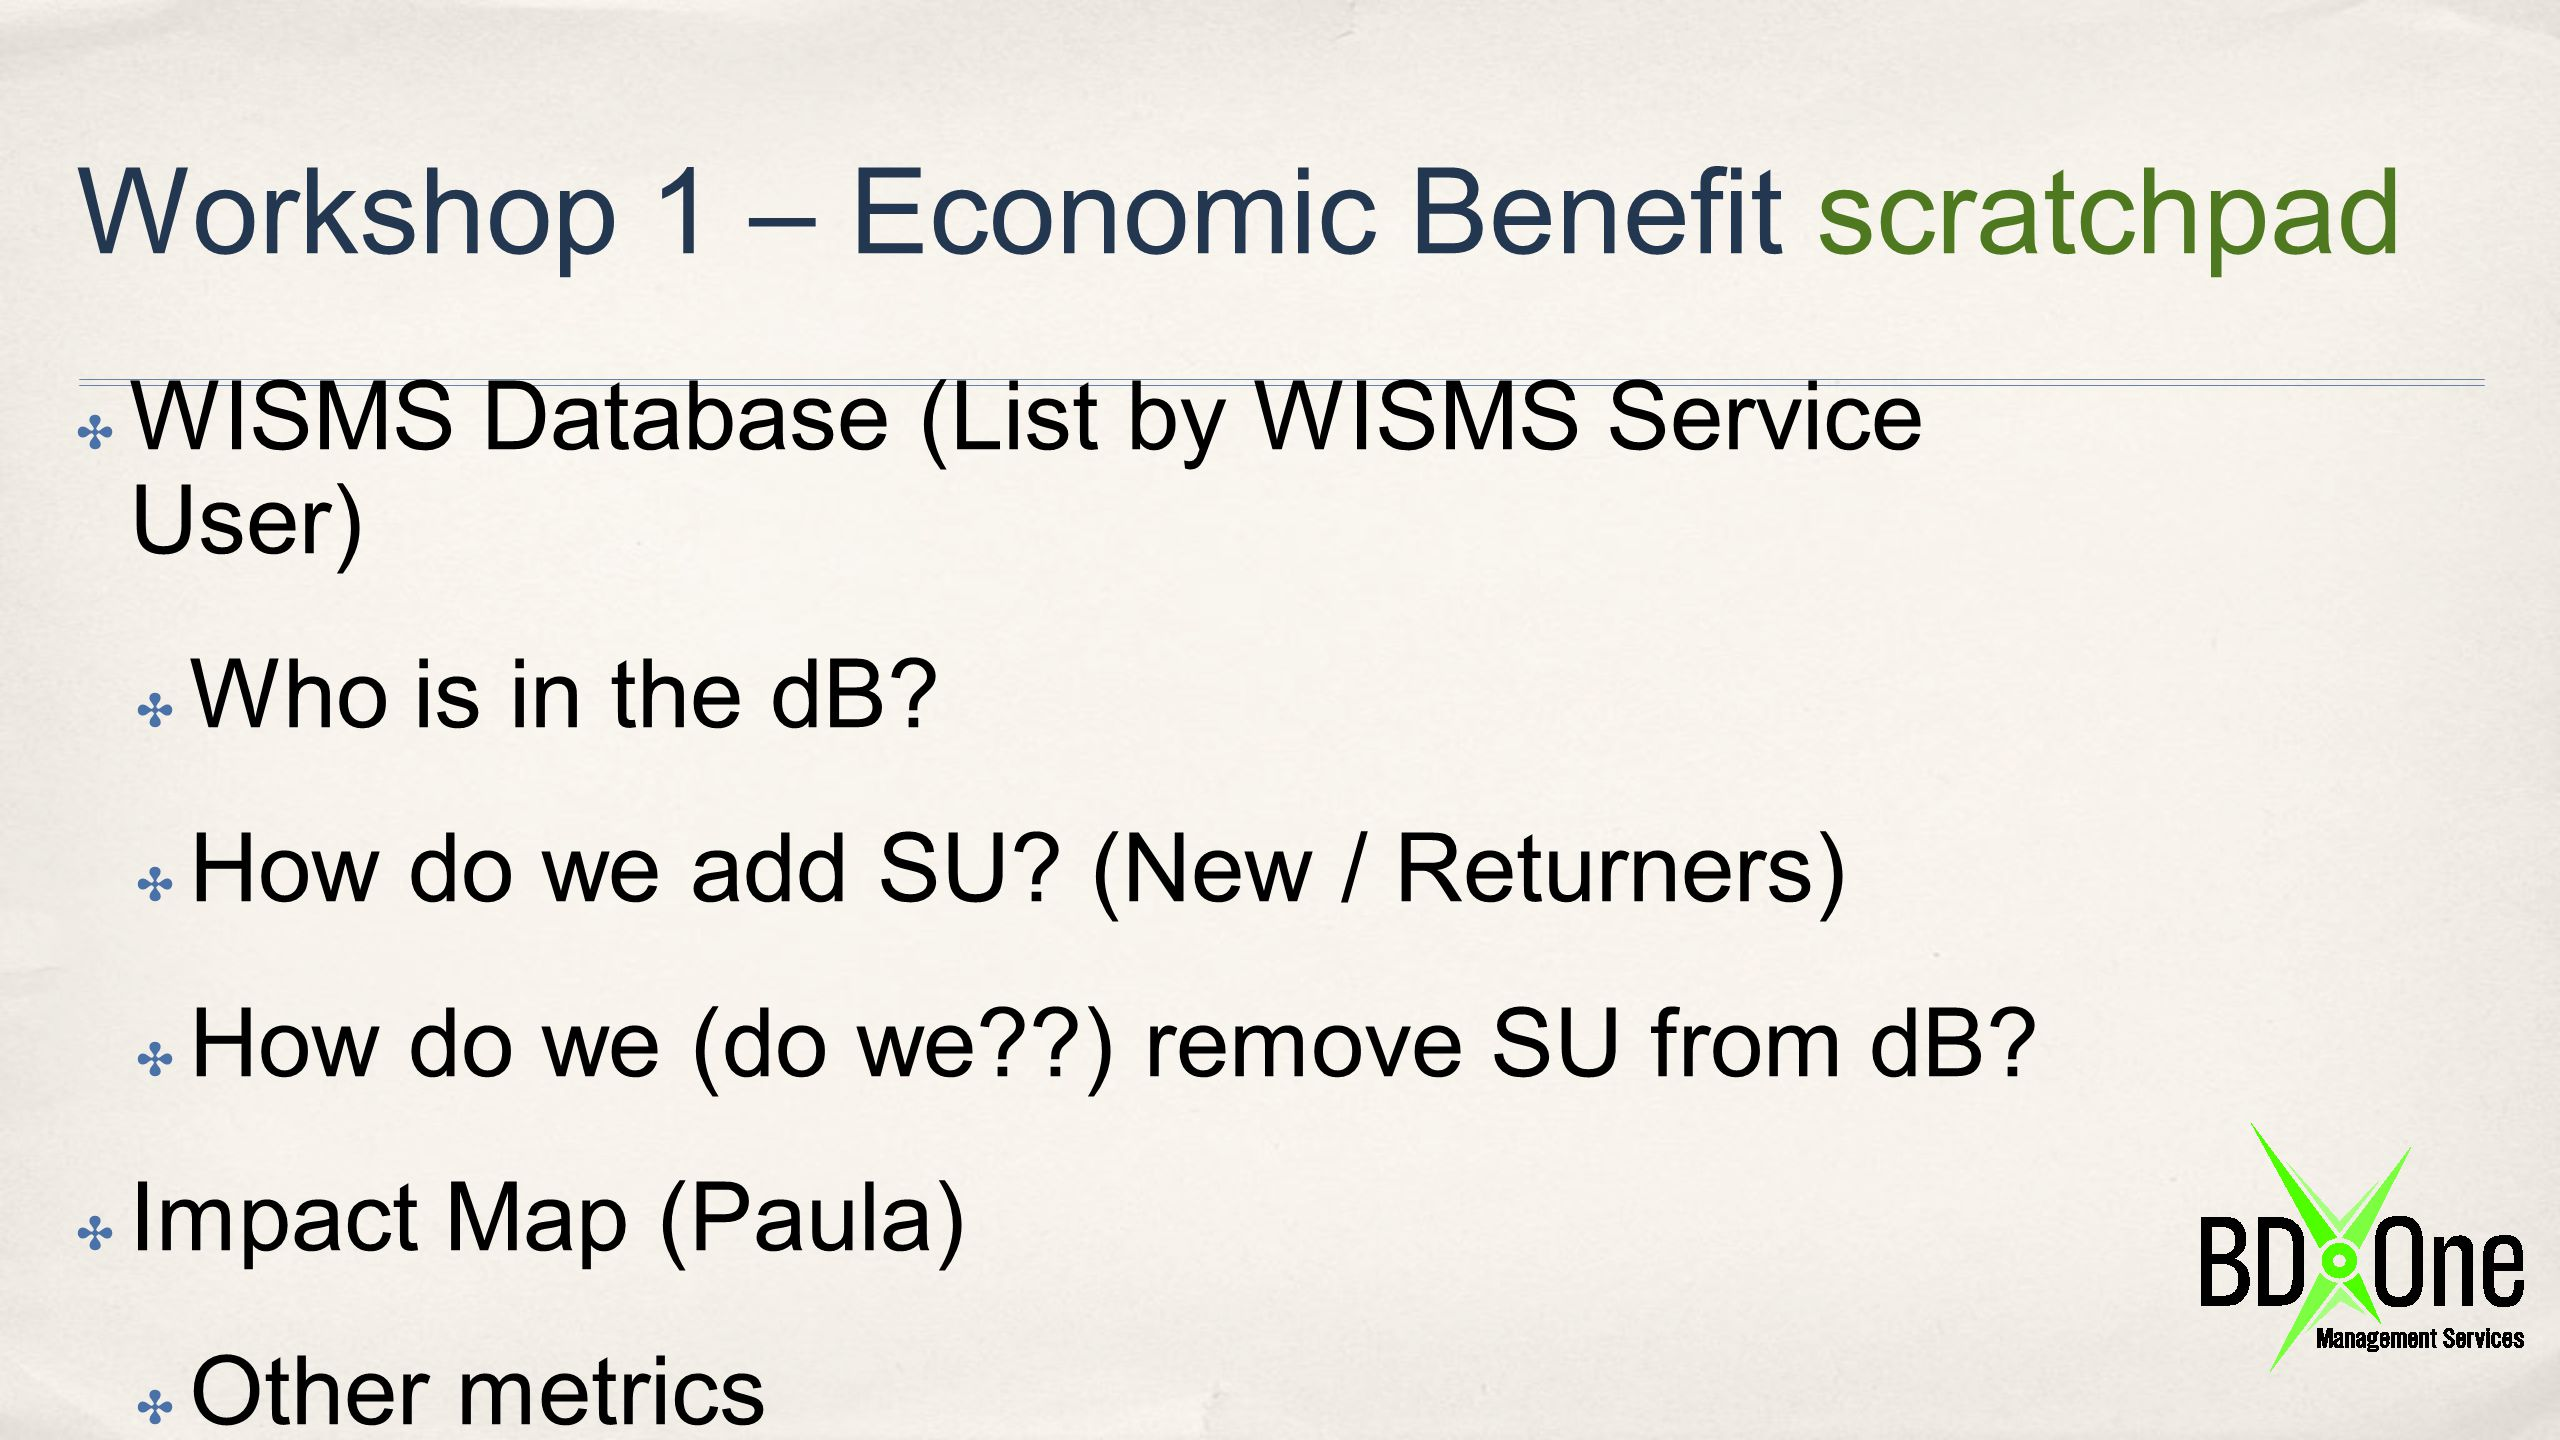 Workshop 1 – Economic Benefit scratchpad ✤ WISMS Database (List by WISMS Service User) ✤ Who is in the dB? ✤ How do we add SU? (New / Returners) ✤ How